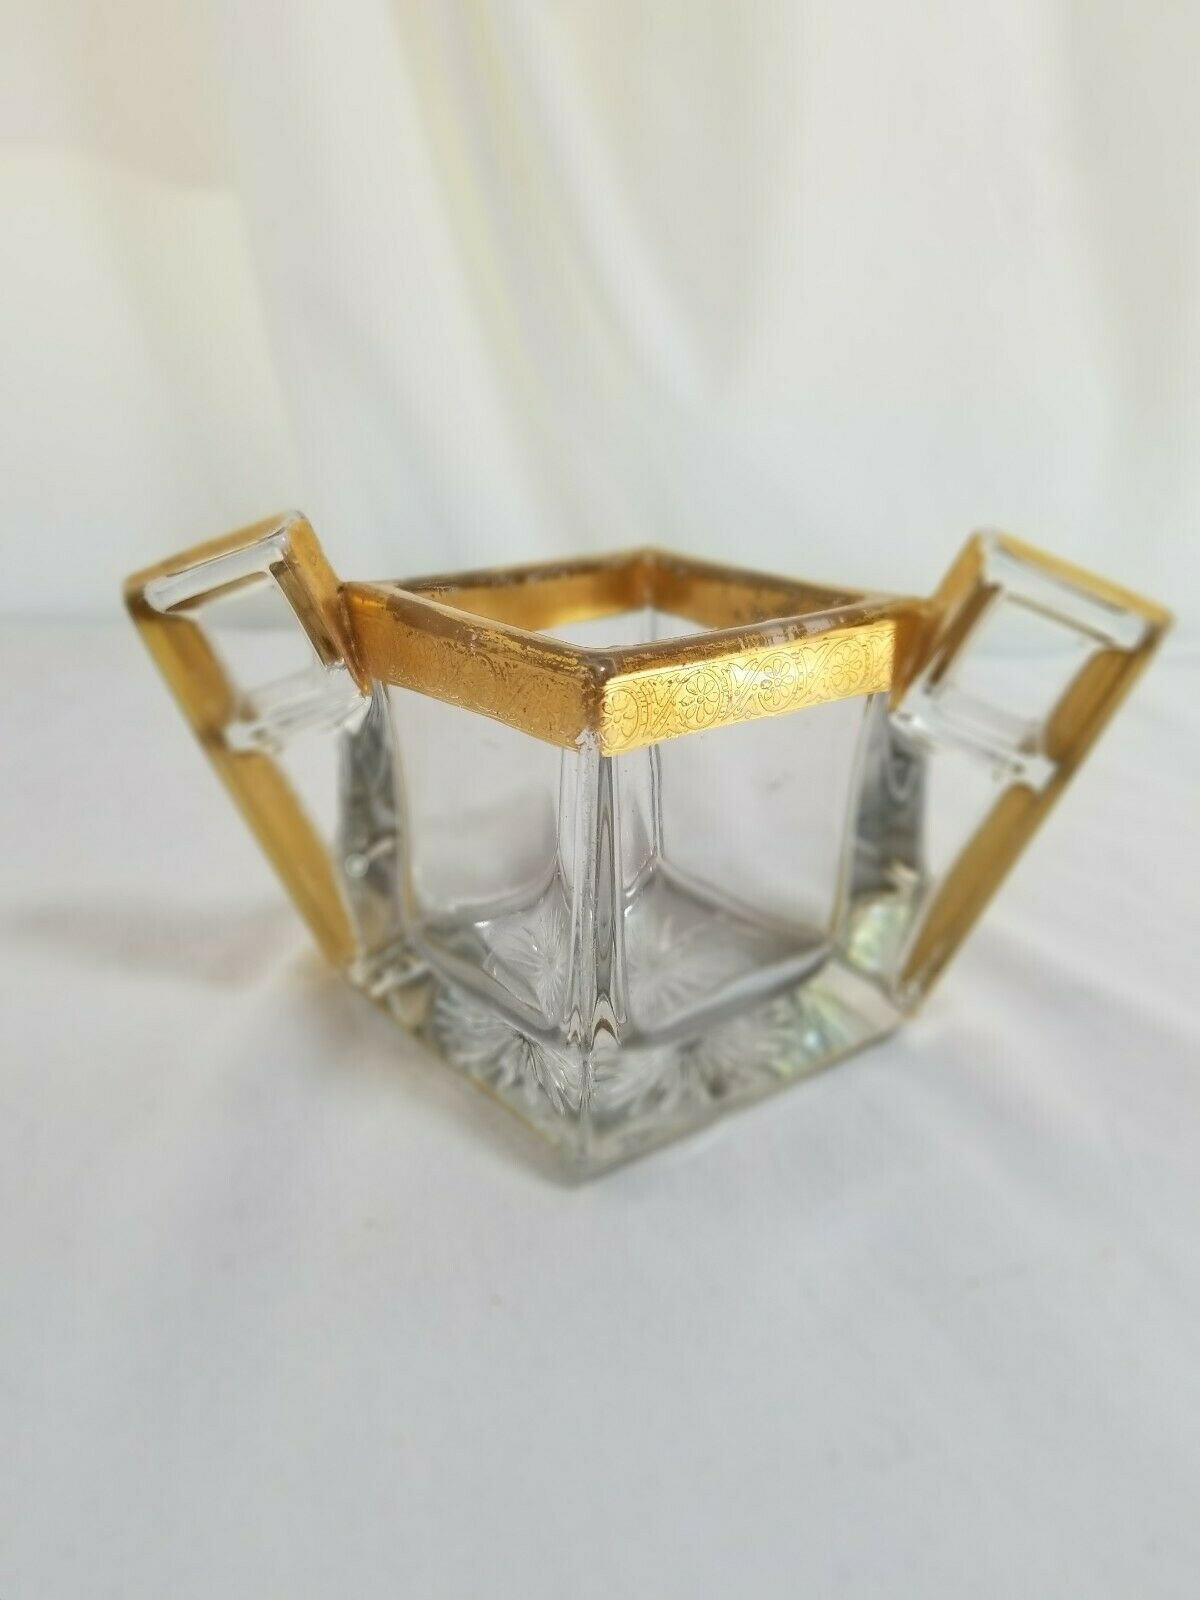 Primary image for Heisey Crystal Quator Sugar Bowl with Gold Rim